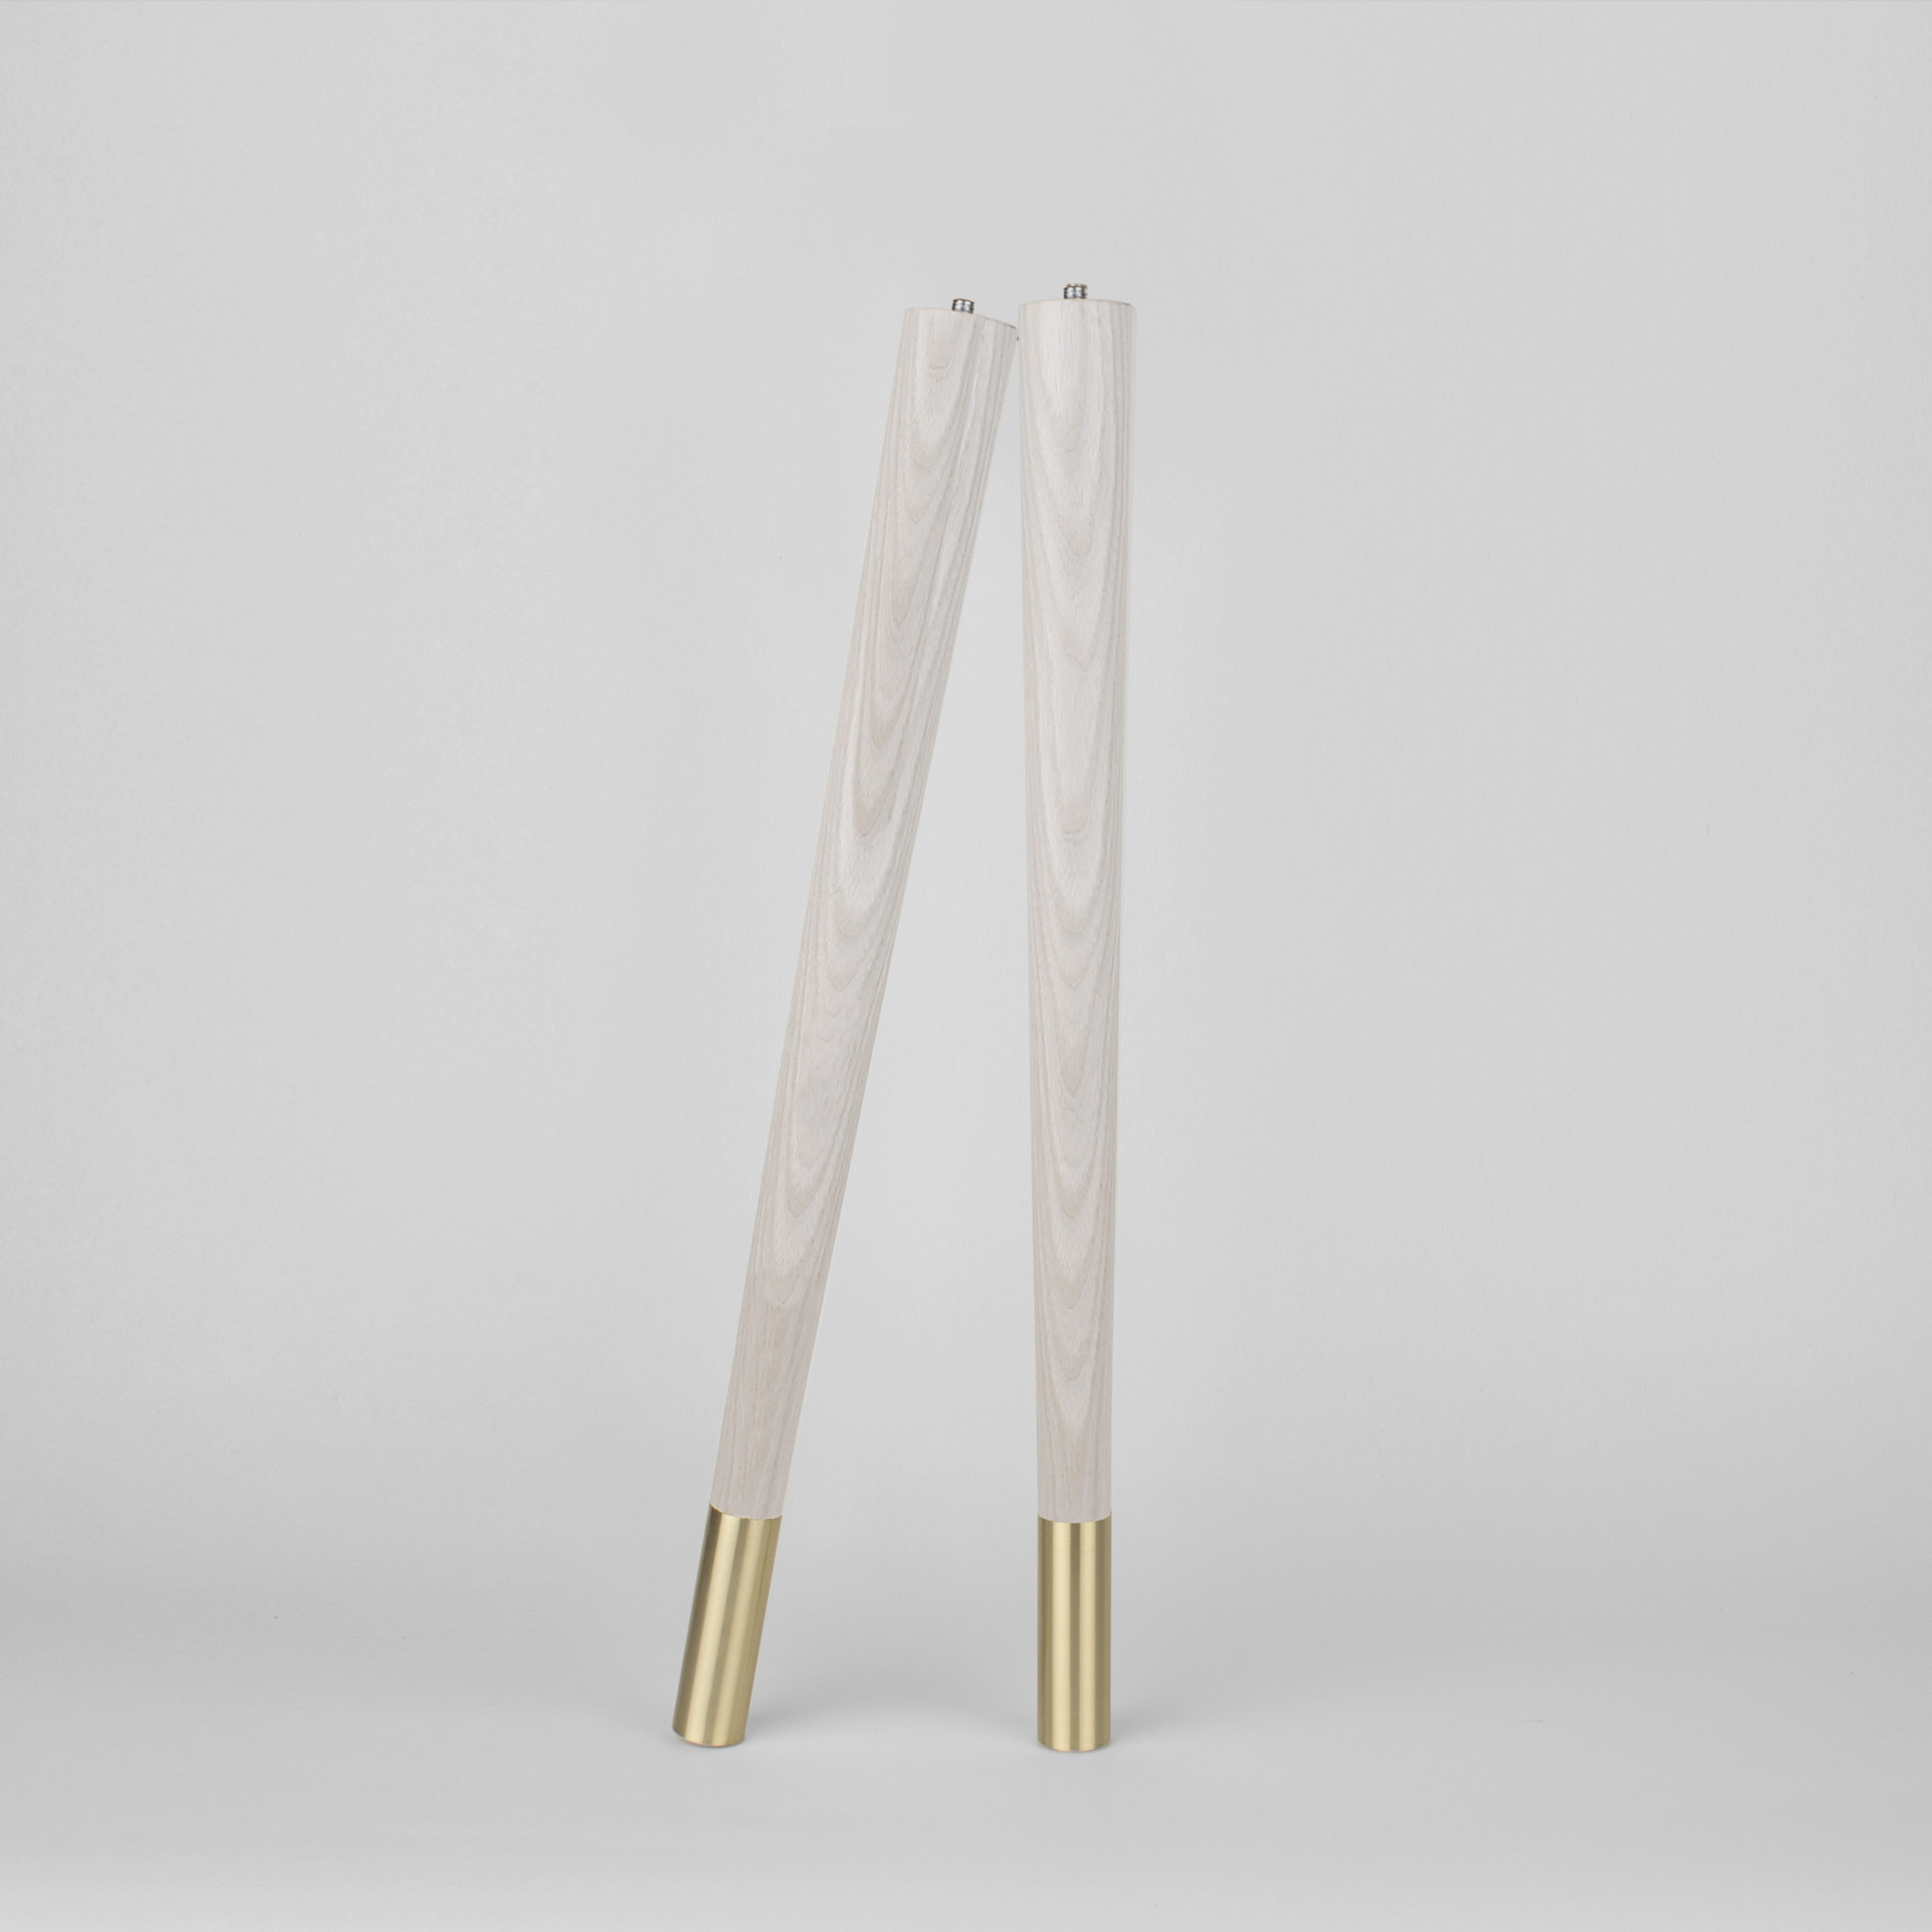 Estelle 480 ben 4-pack ash natural Prettypegs